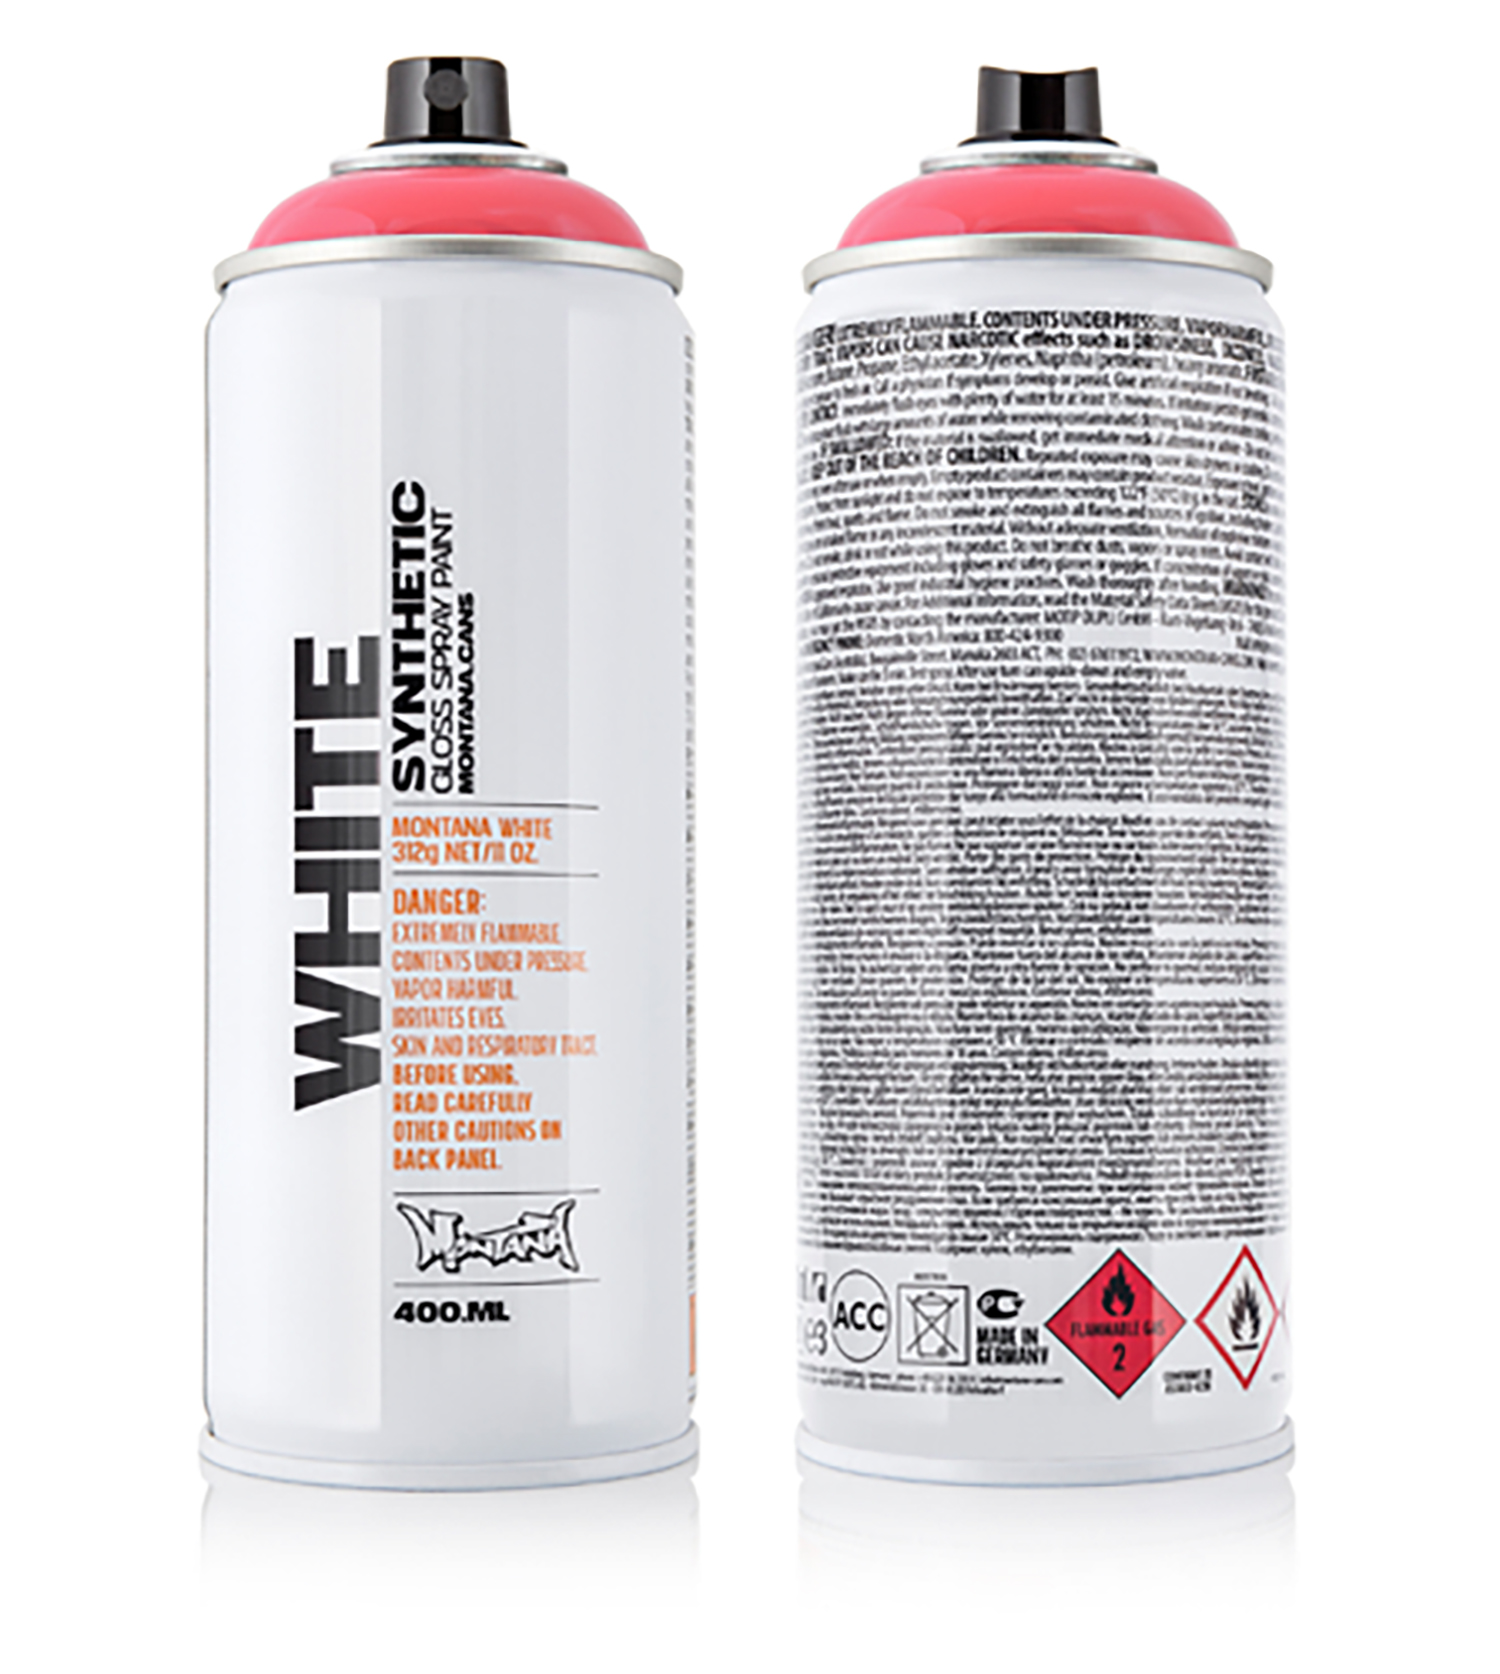 MONTANA-WHITE-SPRAY-400ML-3350